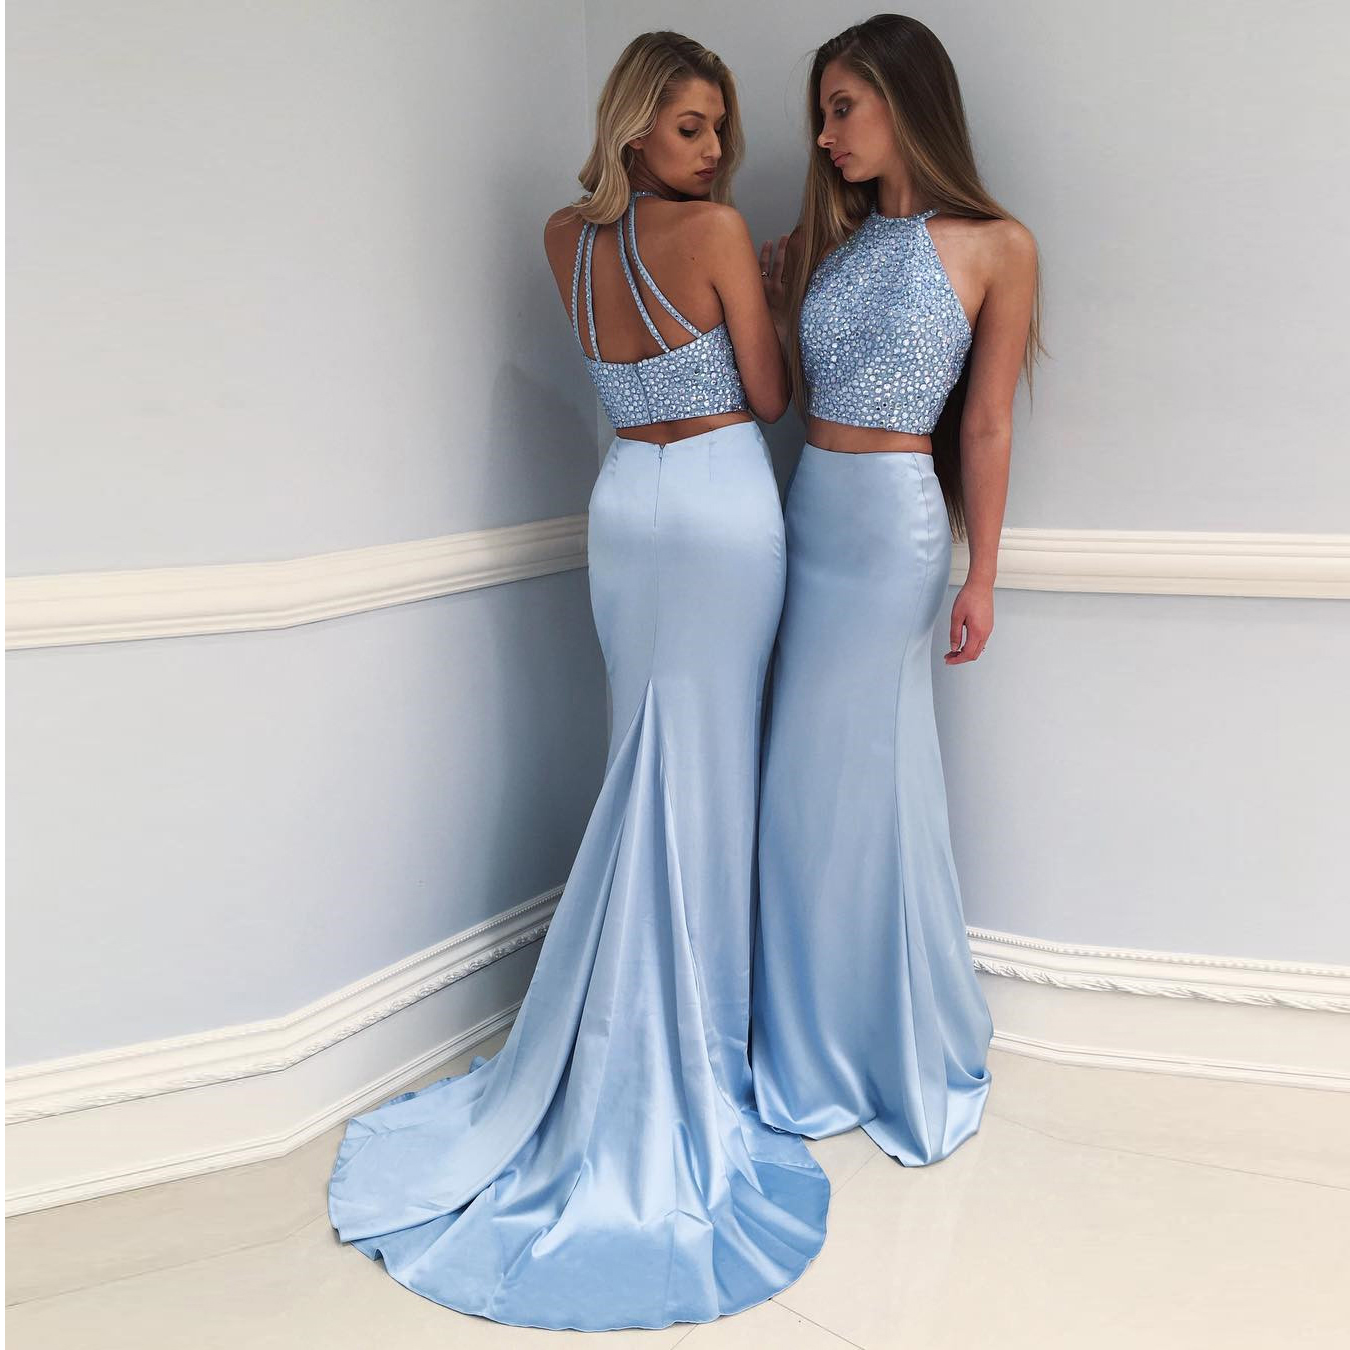 0f7192f7b0a Two 20piece 20prom 20dress 20light 20blue 2c 20beaded 20halter 20mermaid  20formal 20evening 20gown original